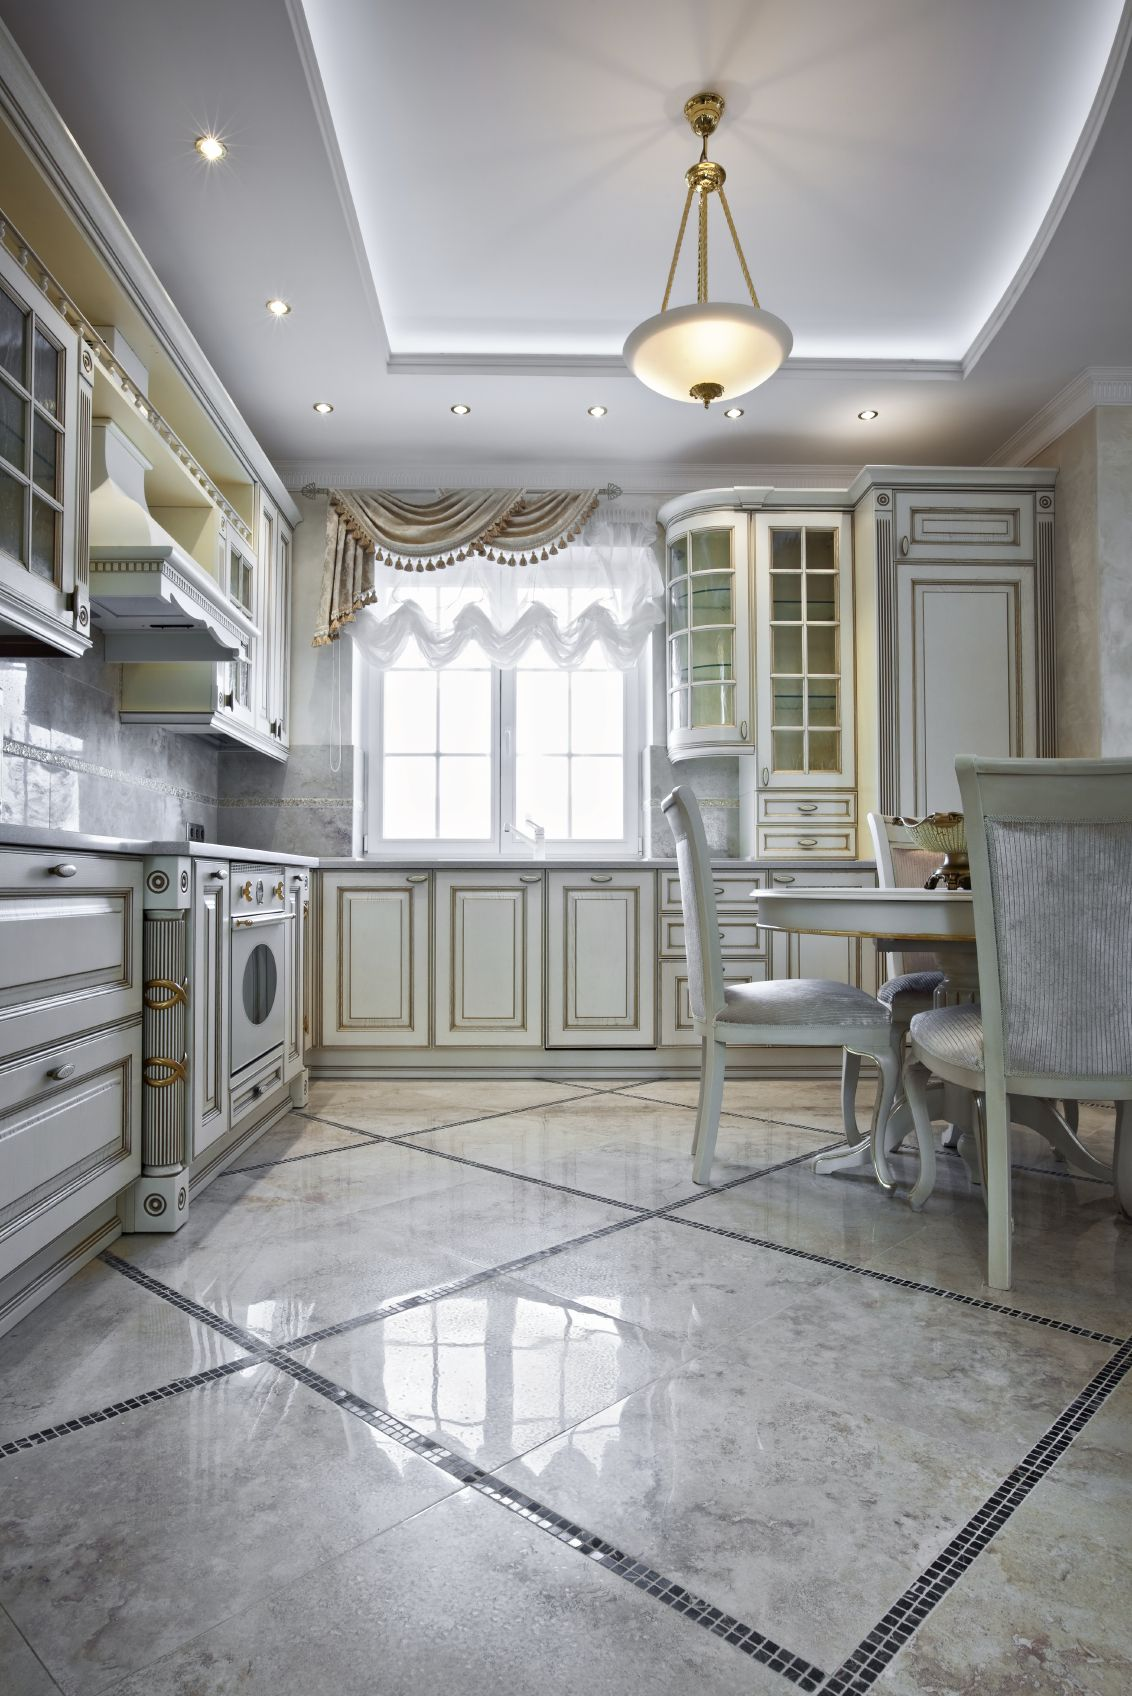 425 white kitchen ideas for 2018 ceiling detail marble floor and intricate white cabinetry with overlaid gold and filigree stands out in this opulent kitchen replete dailygadgetfo Gallery